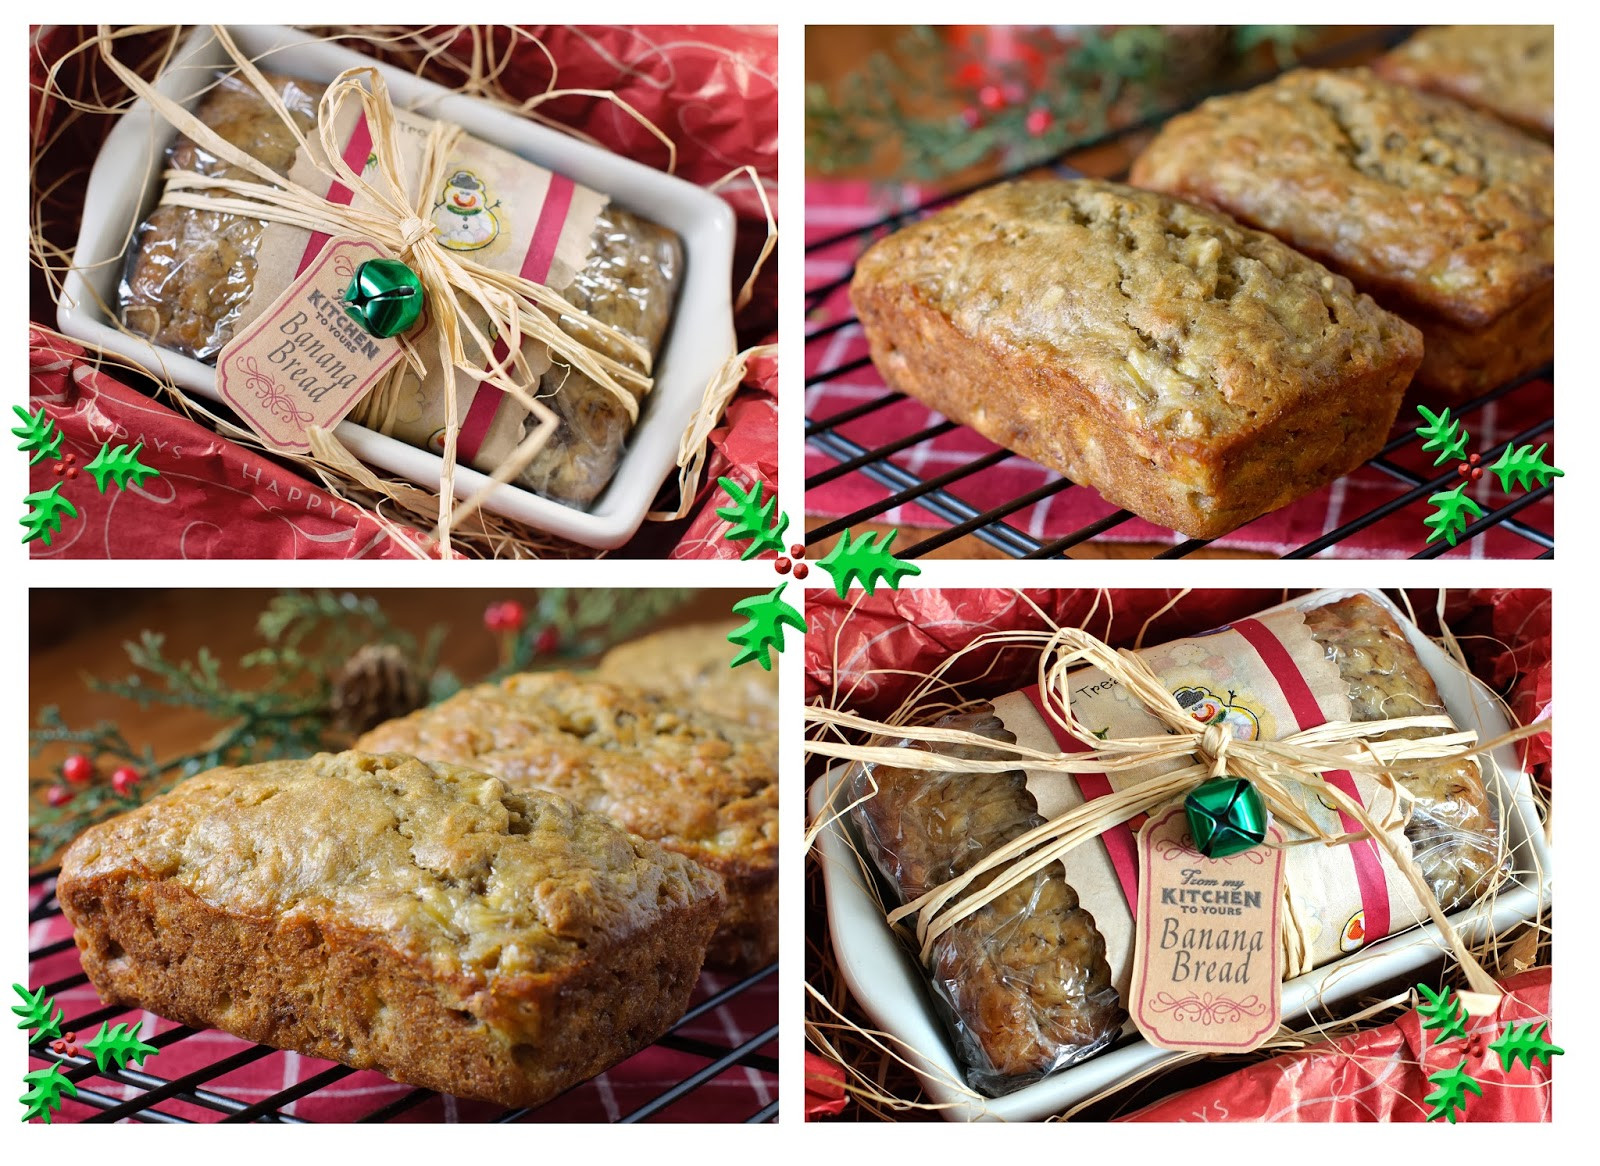 Christmas Bread Gifts  Livin Life e Spoonful At A Time Banana Bread Food Gifts